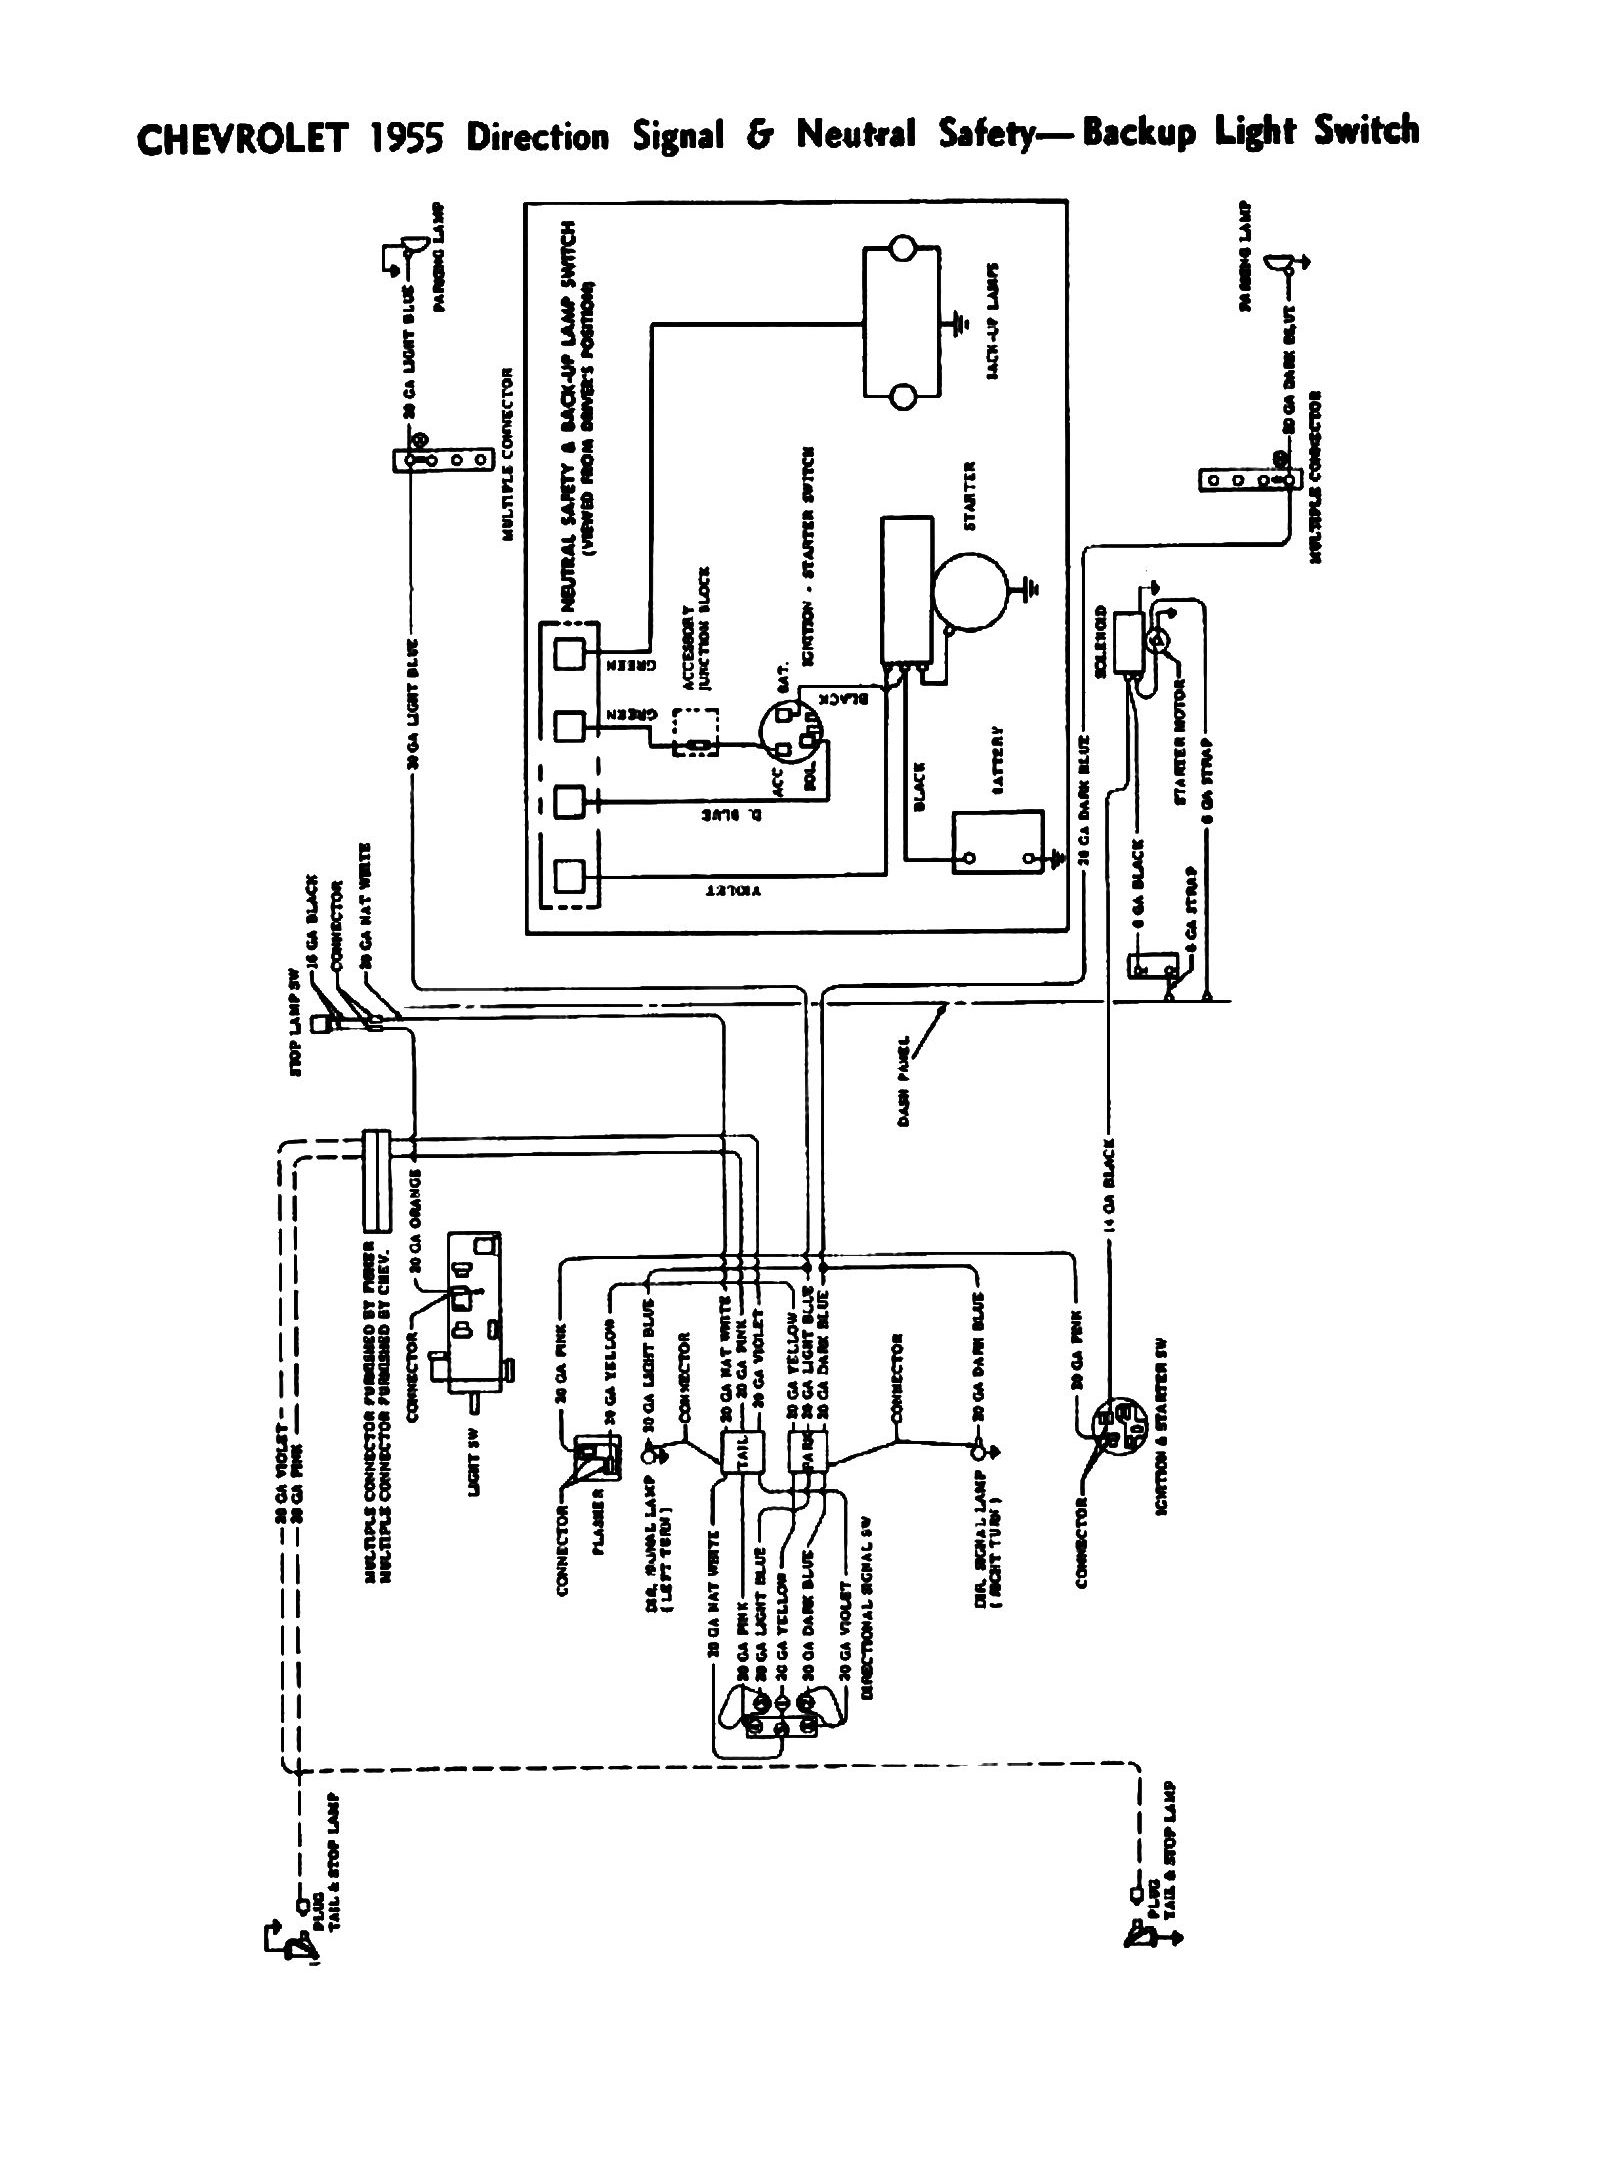 Chevy 350 Starter Wiring Diagram 1955 Ignition Hei Alternator Headache In A 57 Truck Underhood Diagrams Gif Wire Diagram moreover JK0a 15562 as well 1174690 Msd 6al 2 Step Wiring Question further Showthread besides Chevy Starter Wiring Diagram Ignition Wiring Diagram Wiring New Jegs Mini Starter Chevy Starter Solenoid Wiring Diagram. on 55 chevy ignition switch wiring diagram